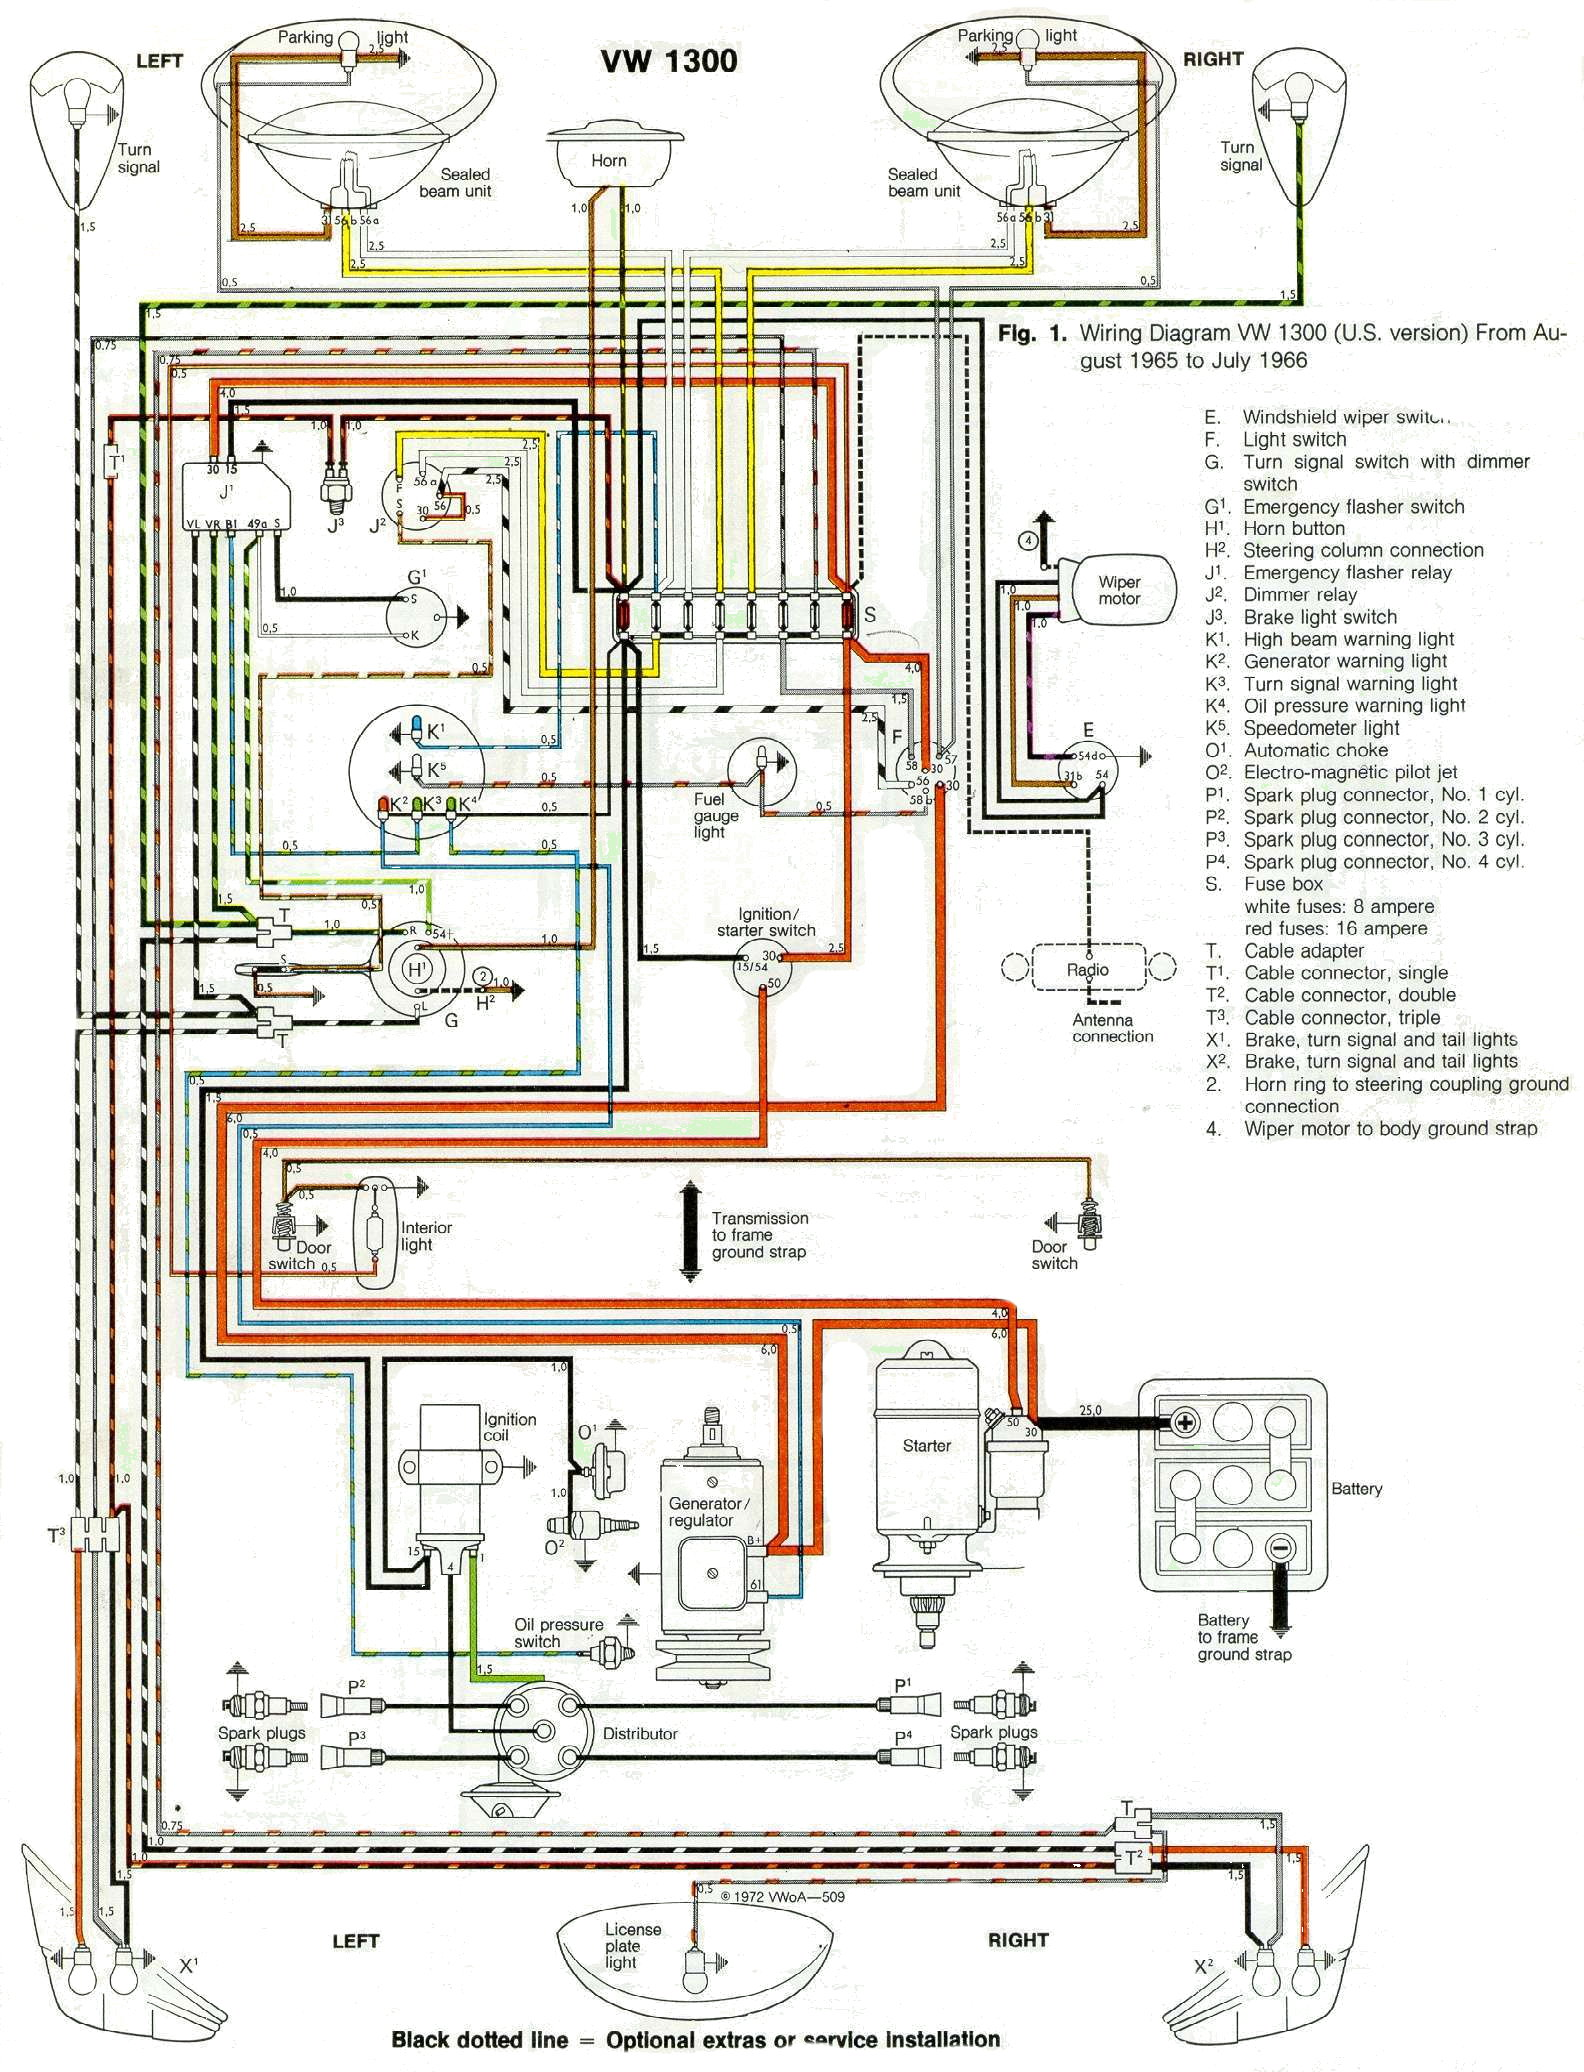 1966 Wiring 1966 wiring diagram beetle wiring harness at gsmx.co